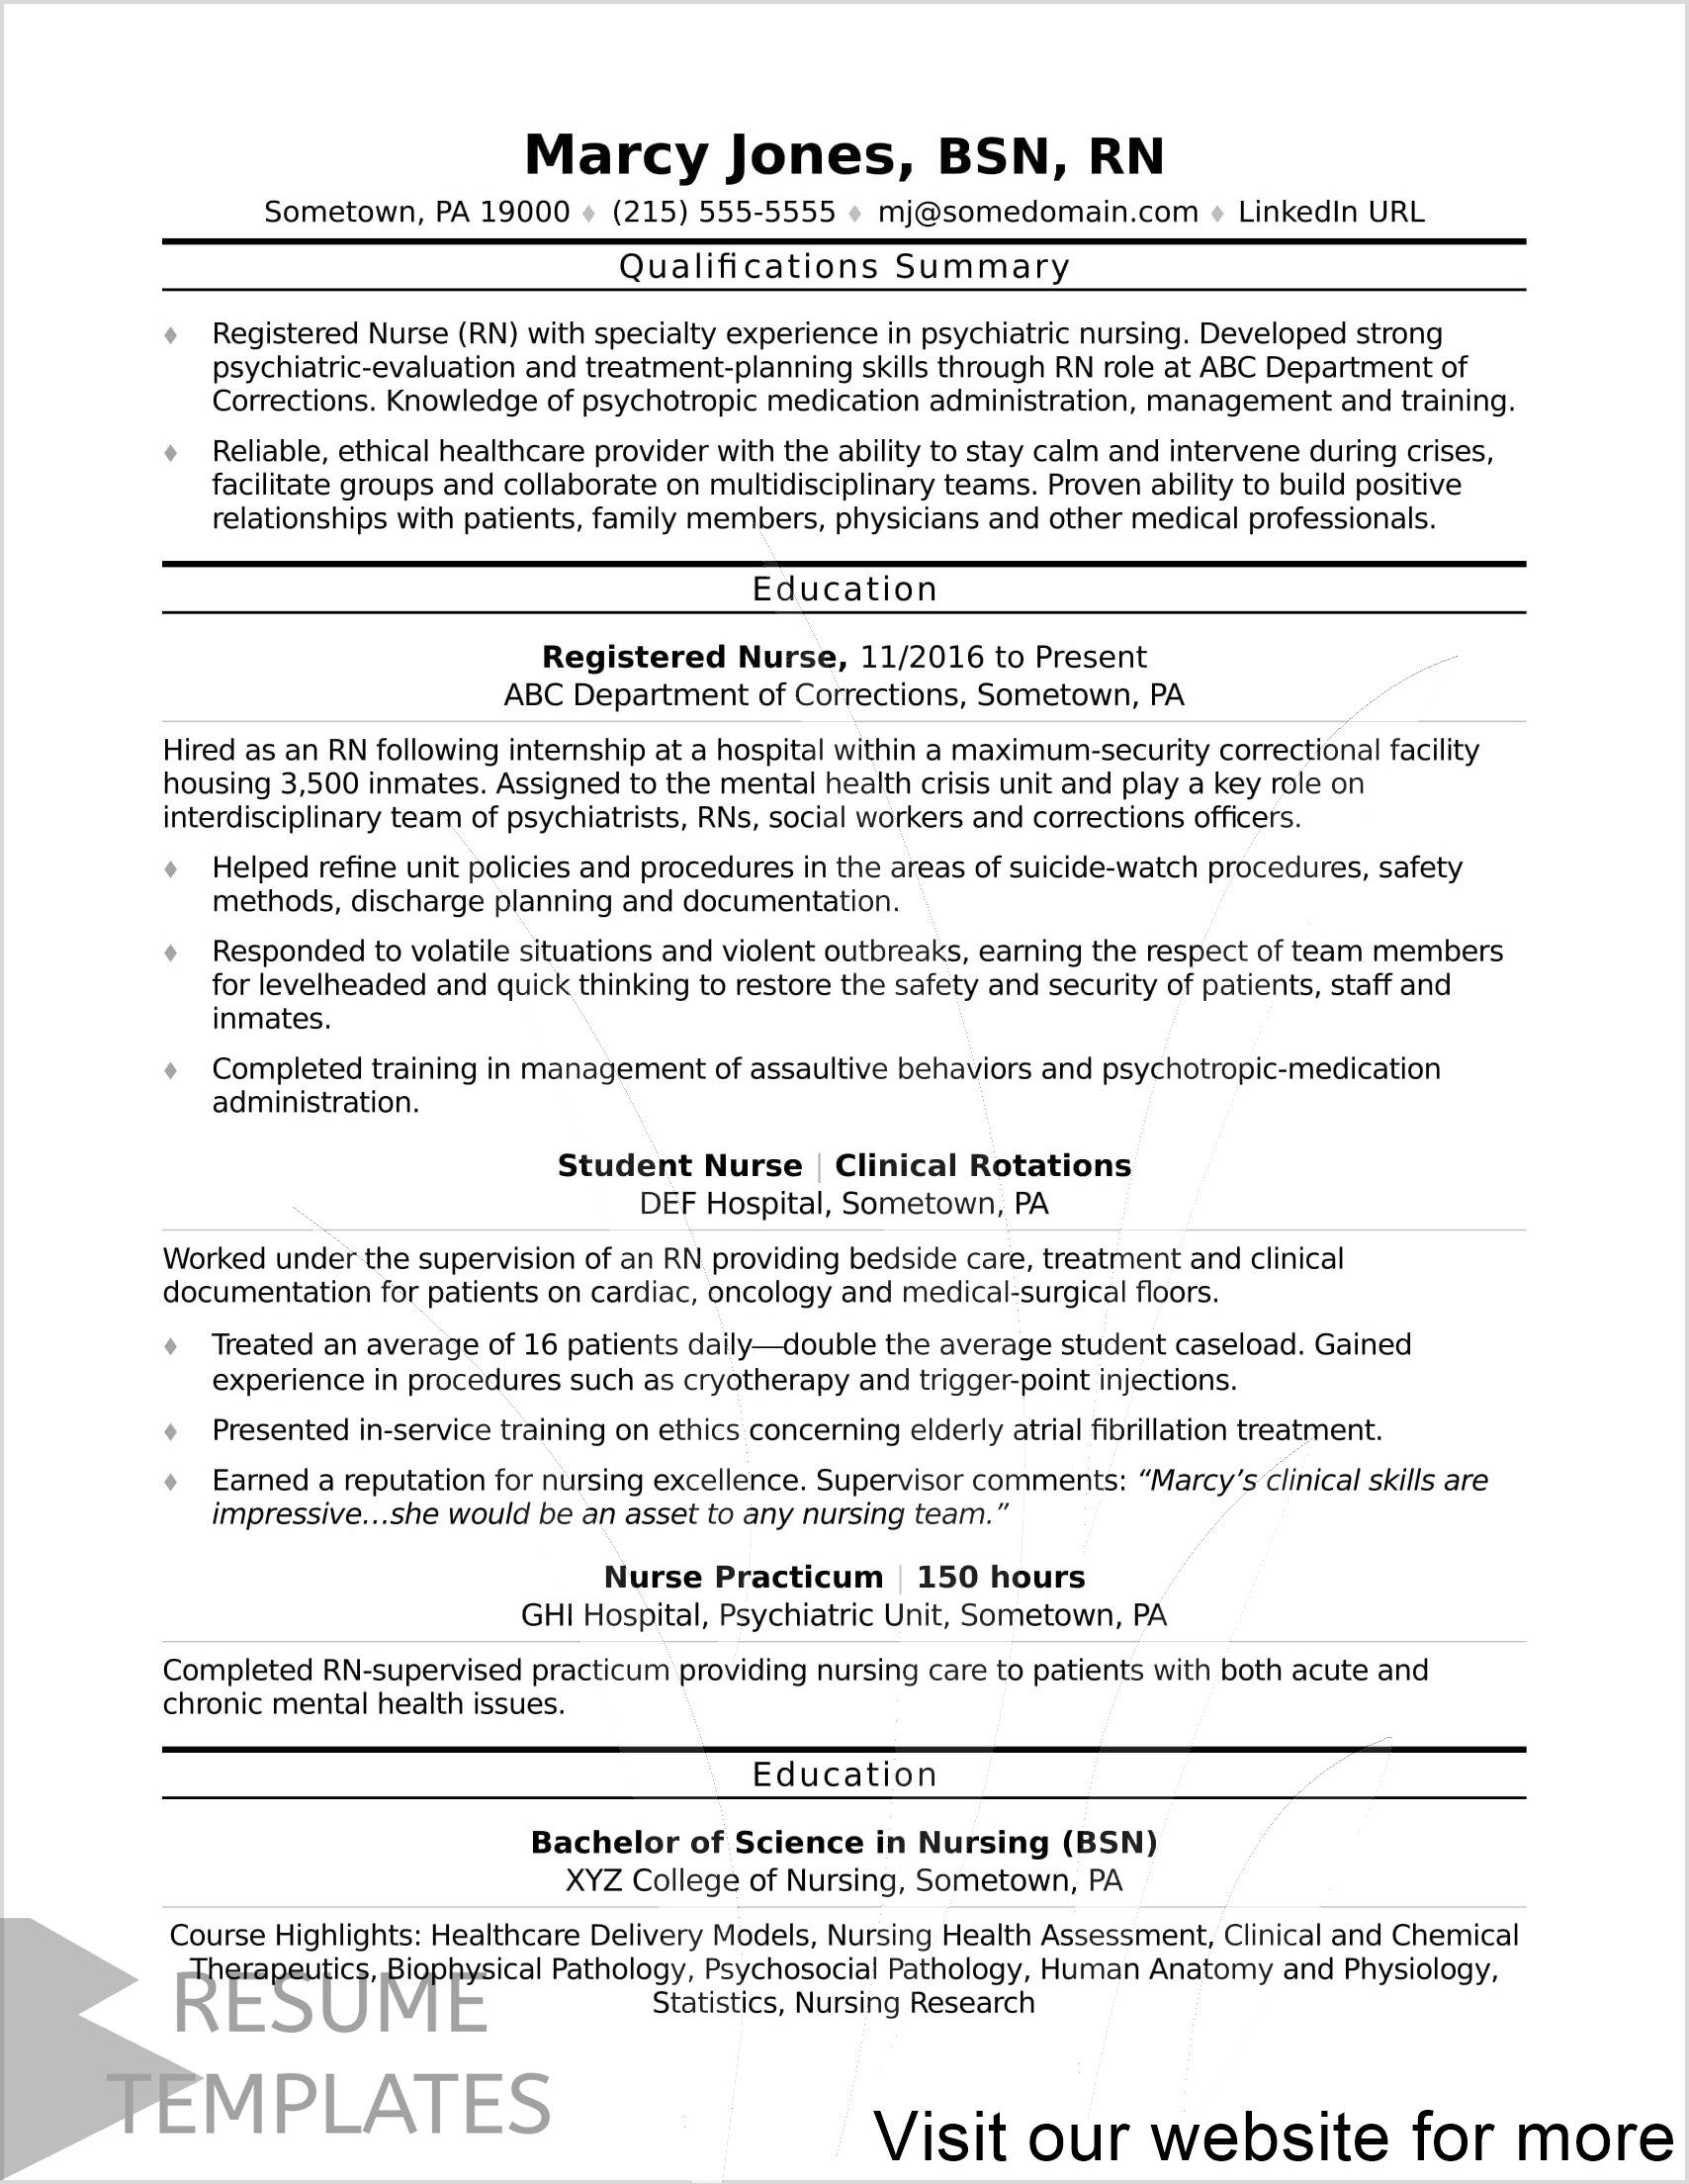 resume template free for freshers in 2020 Nursing resume